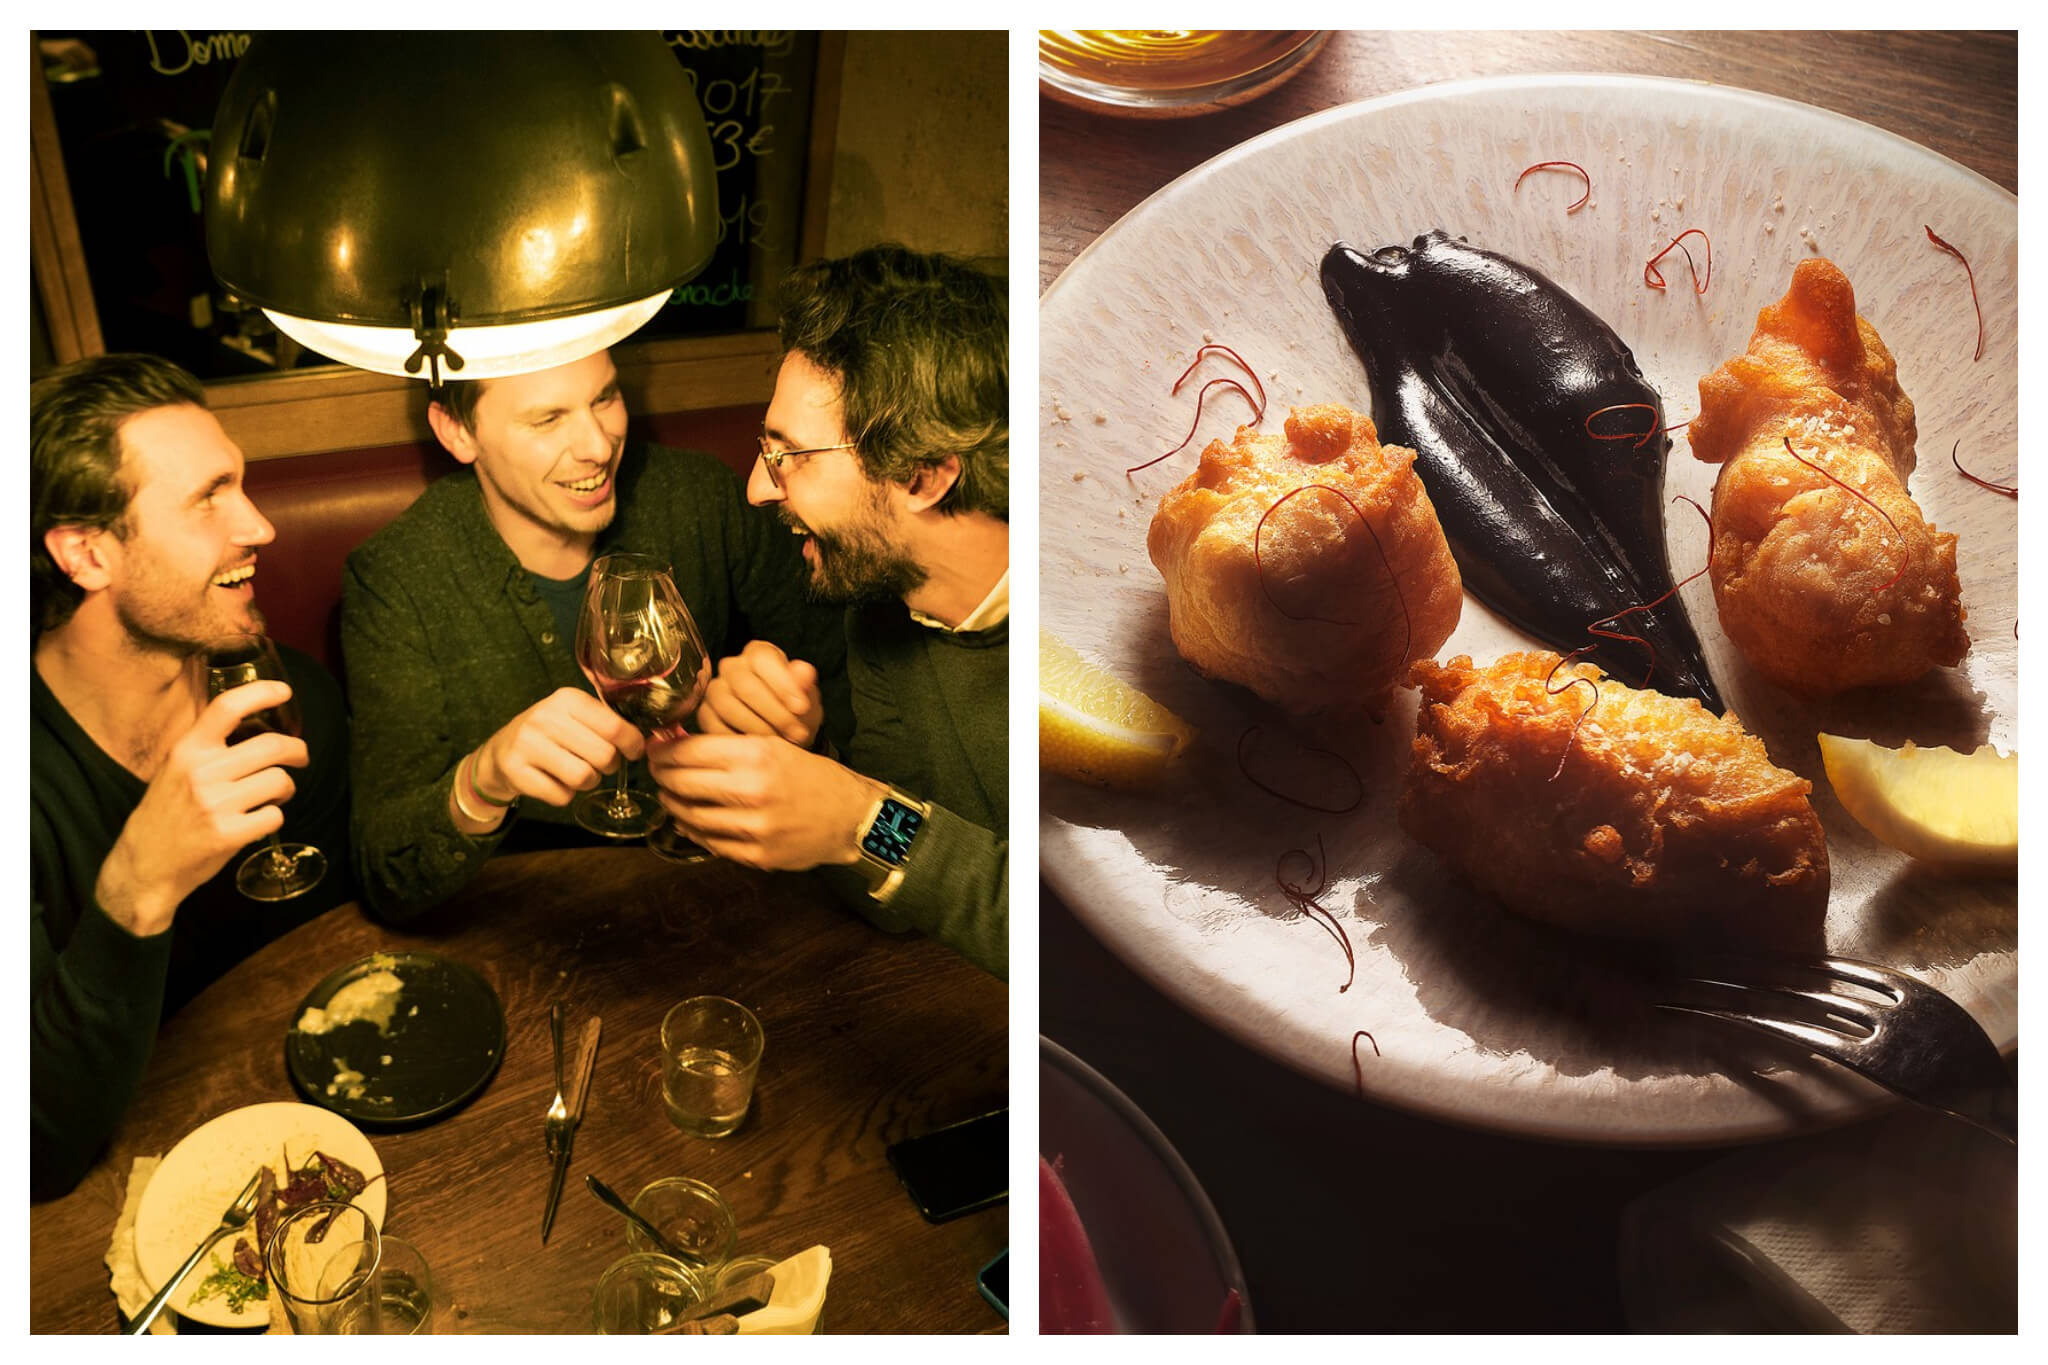 Left: Three friends share food and drinks a Freddy's wine bar, Right: A plate of sweet potato fritters at Freddy's wine bar.